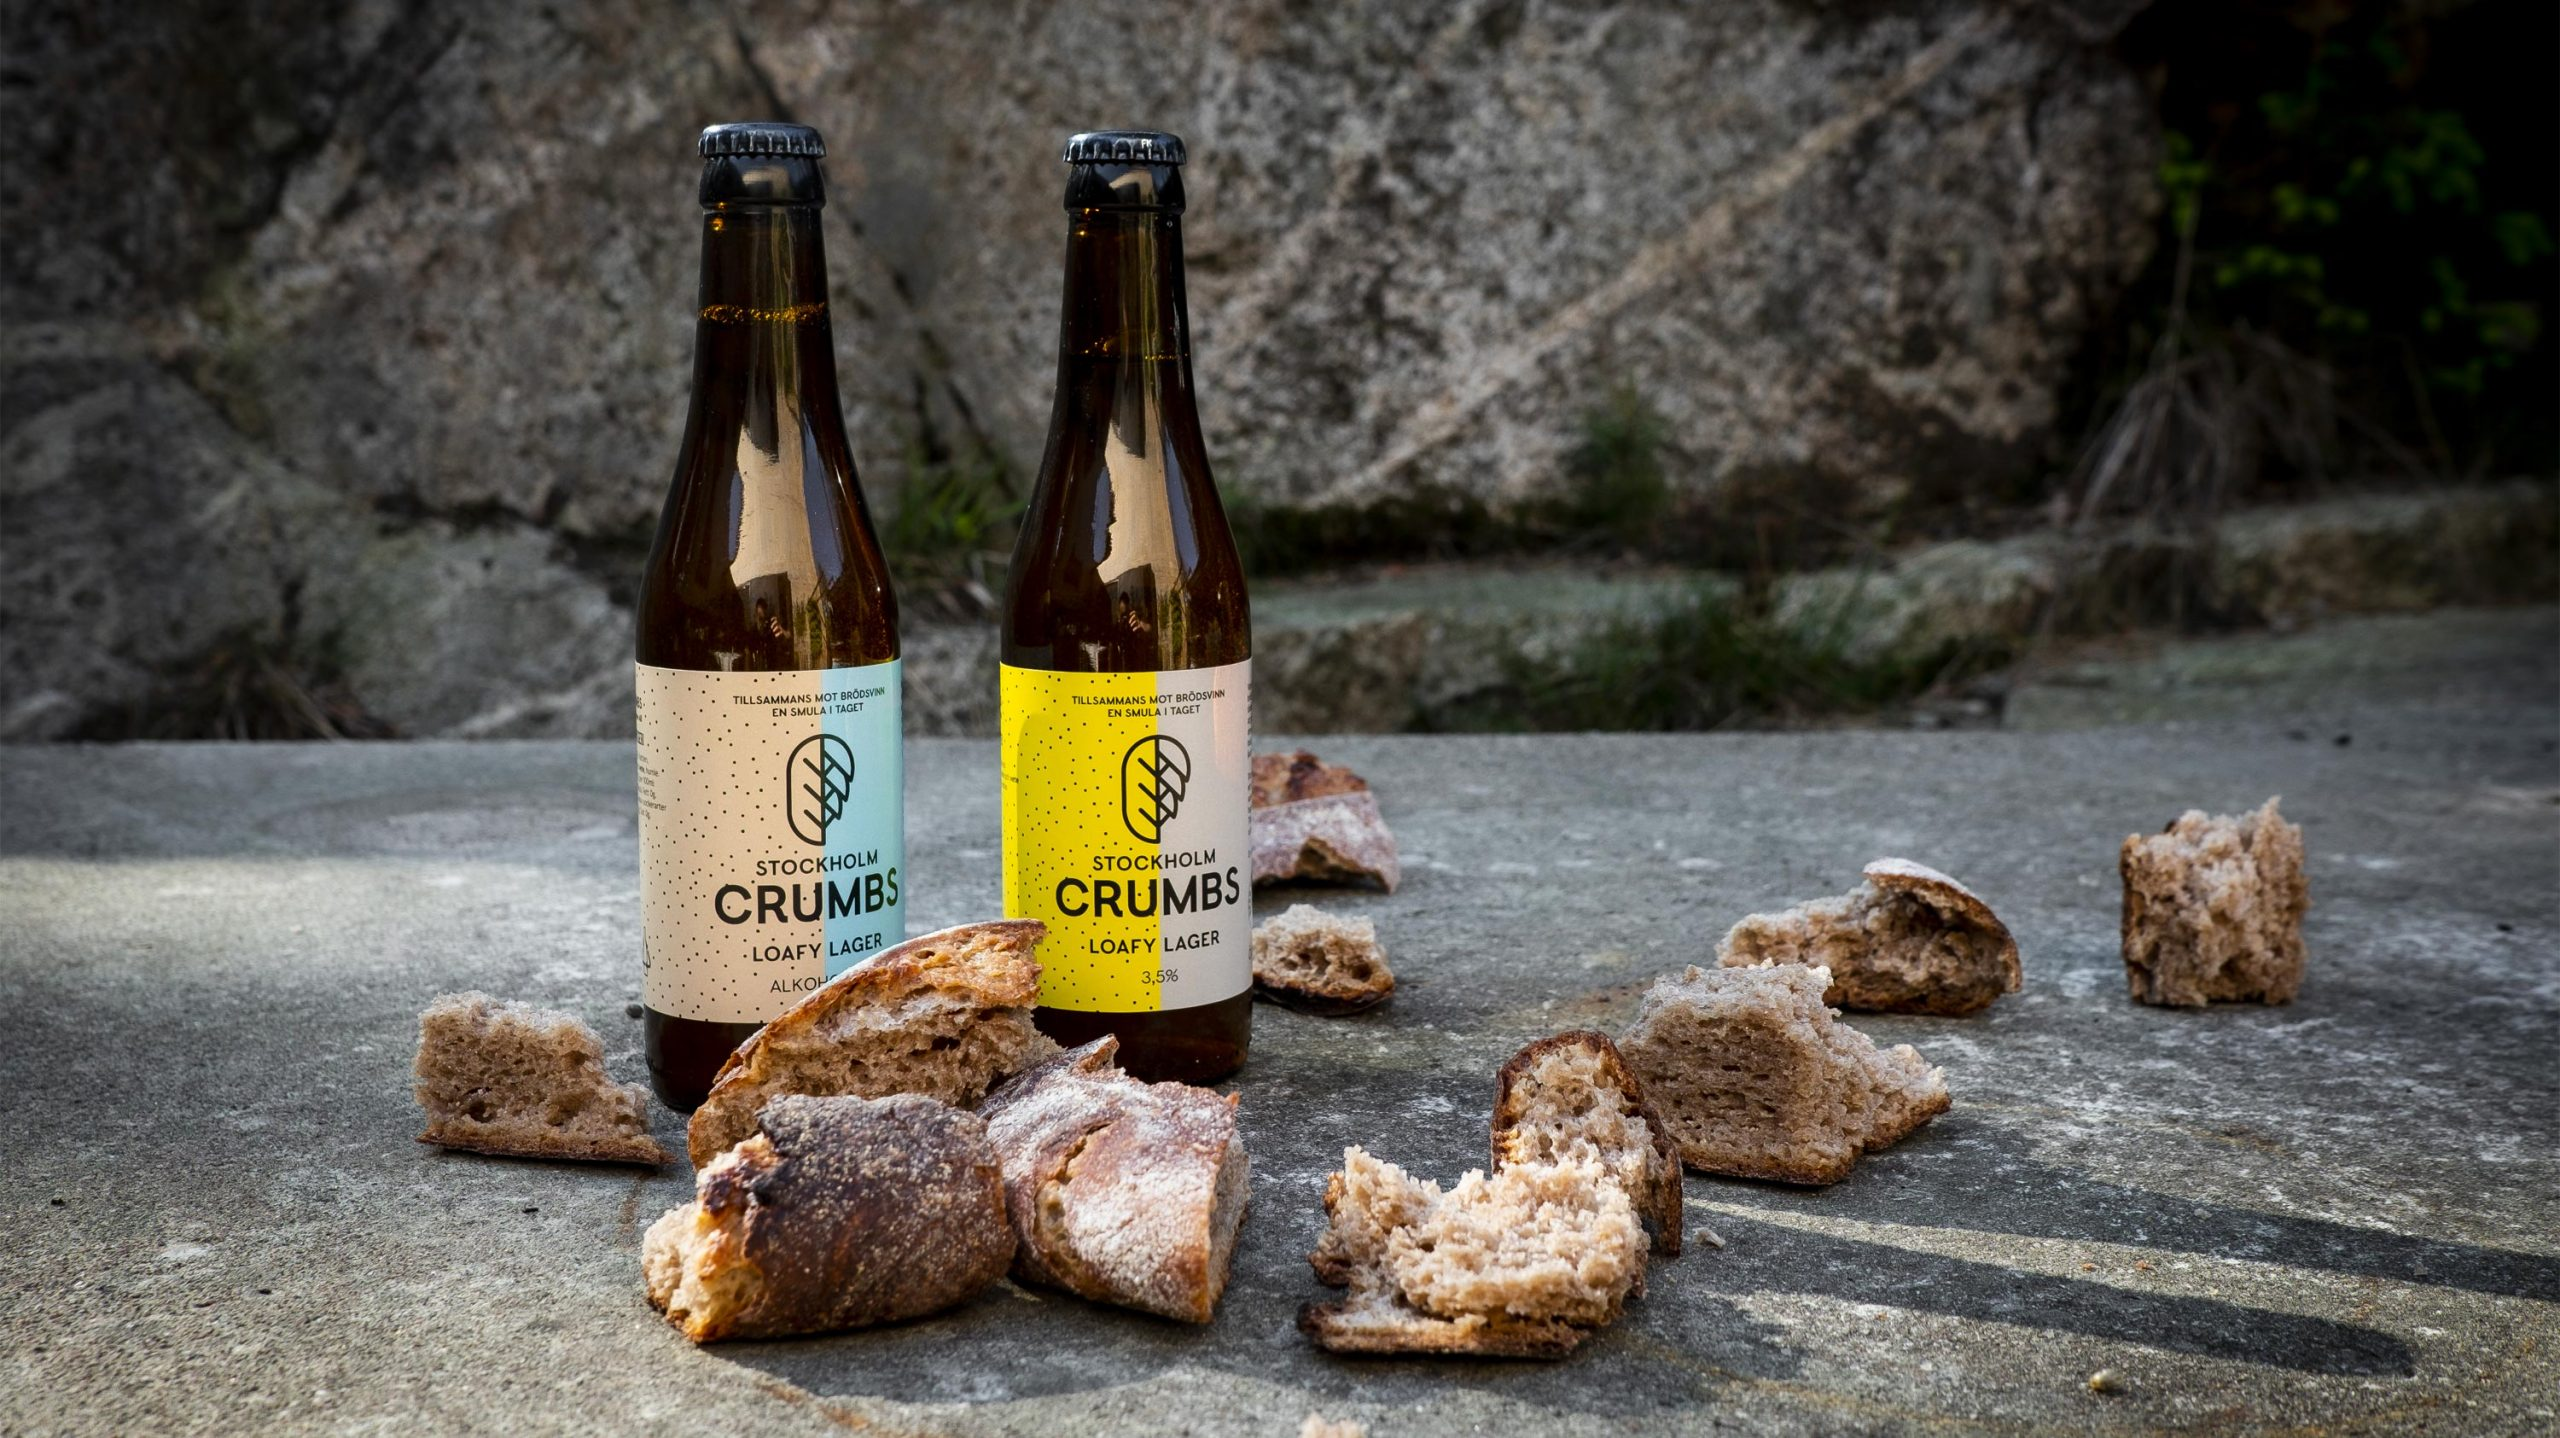 Crumbs loafy lager